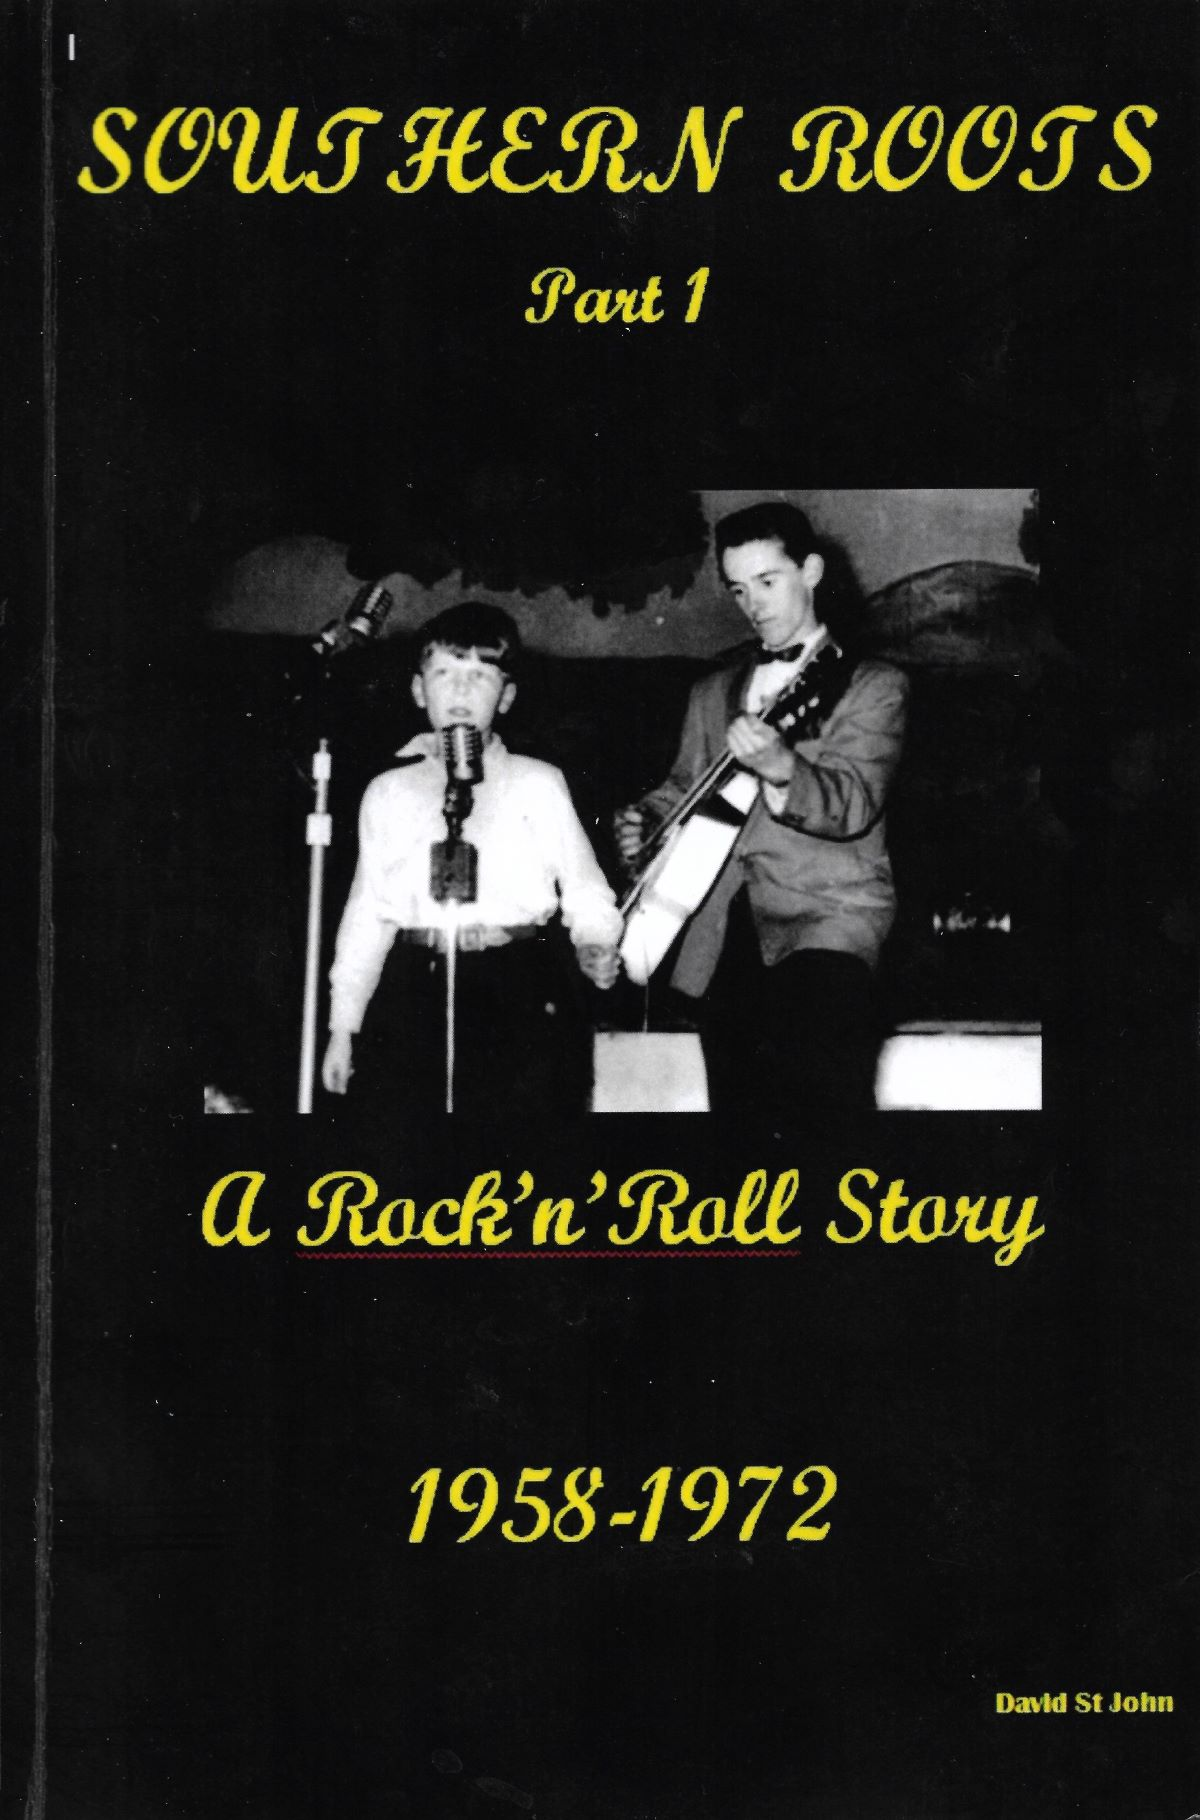 Book Review: Southern Roots, Part 1: A Rock 'n' Roll Story (1958-1972) by David St John